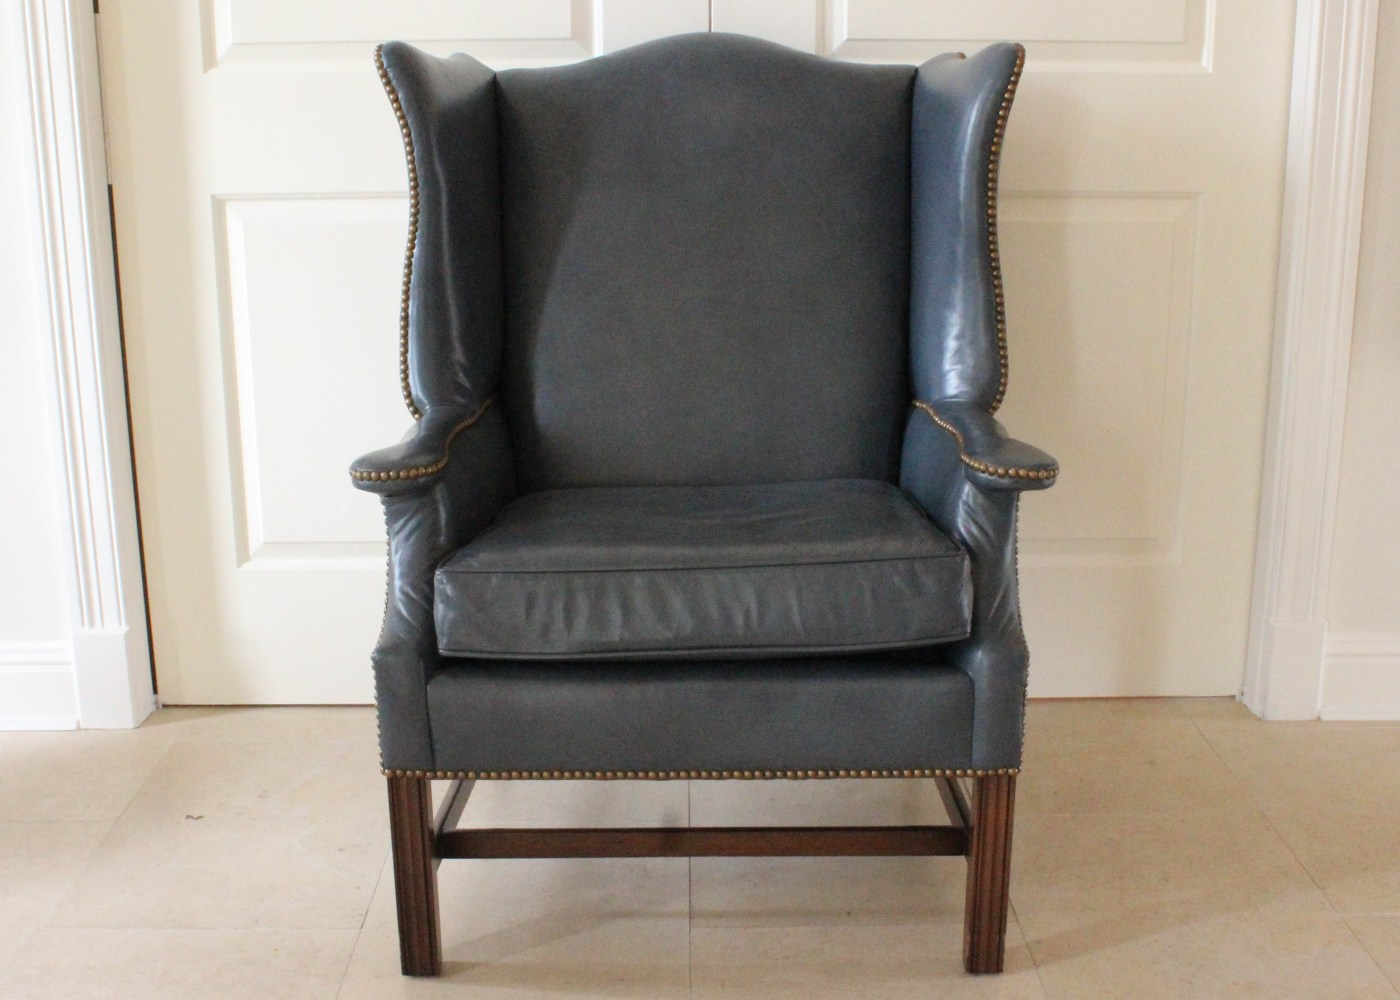 Navy Blue Wingback Chair Loeblein Creations Blue Leather Wingback Chair Ebth